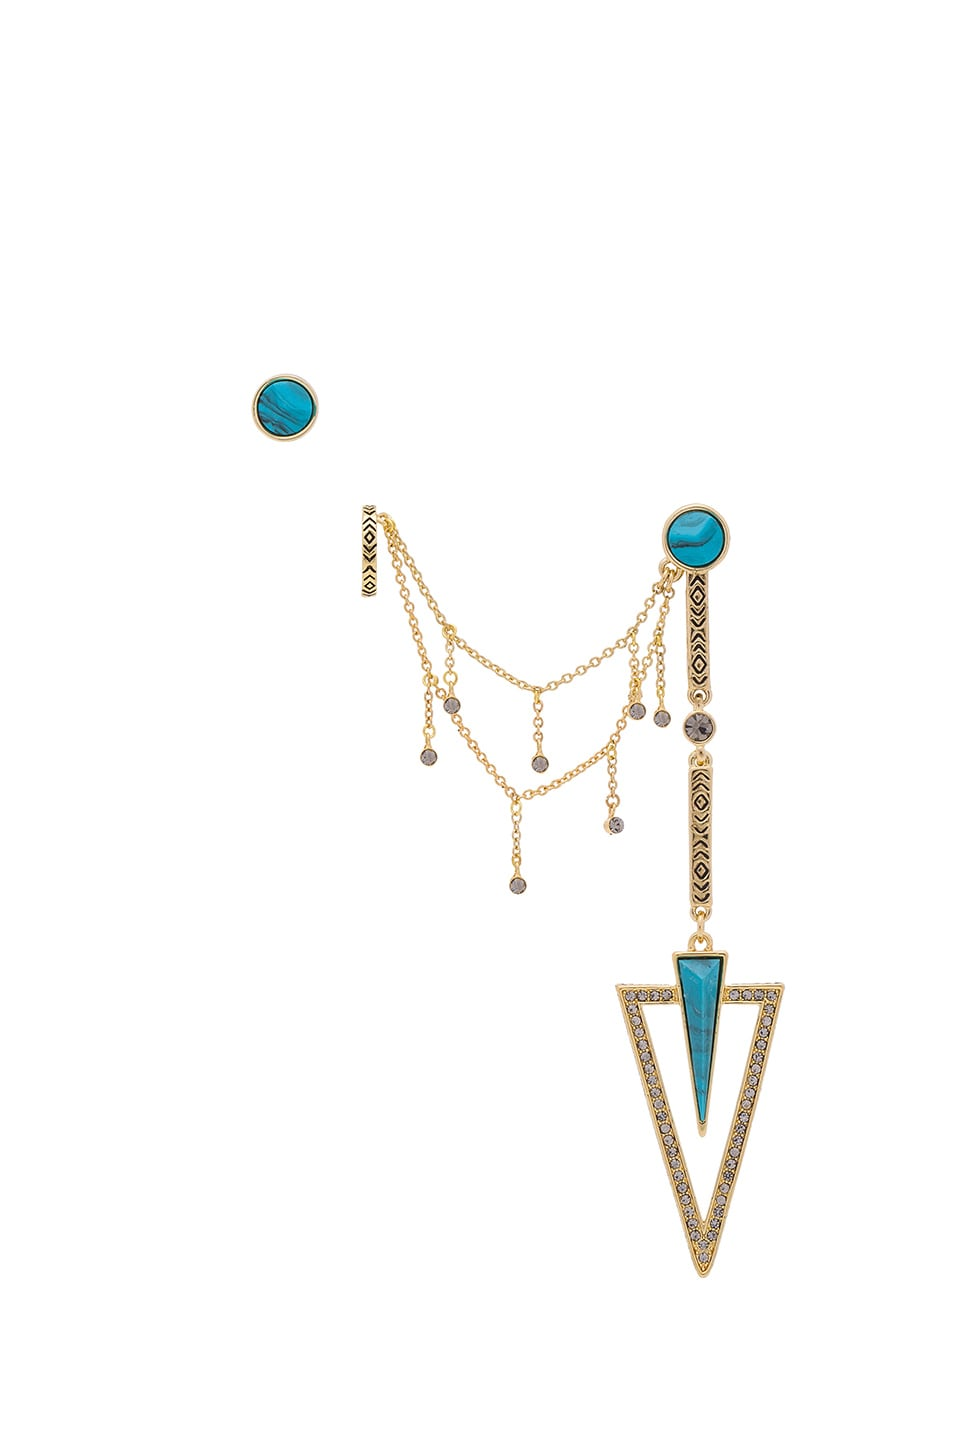 House of Harlow 1960 House of Harlow South Point Statement Earrings in Gold & Turquoise